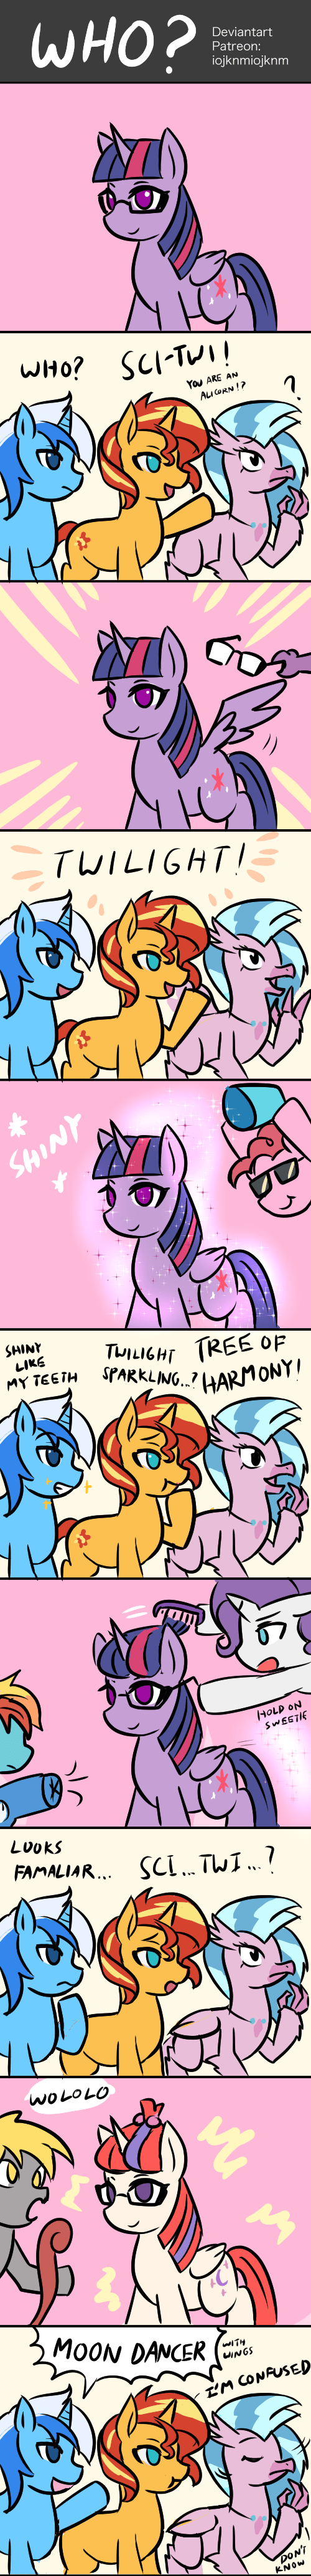 wololo scitwi silverstream tree of harmony derpy hooves twilight sparkle pinkie pie minuette Memes iojknmiojknm rarity sunset shimmer rainbow dash - 9294990080